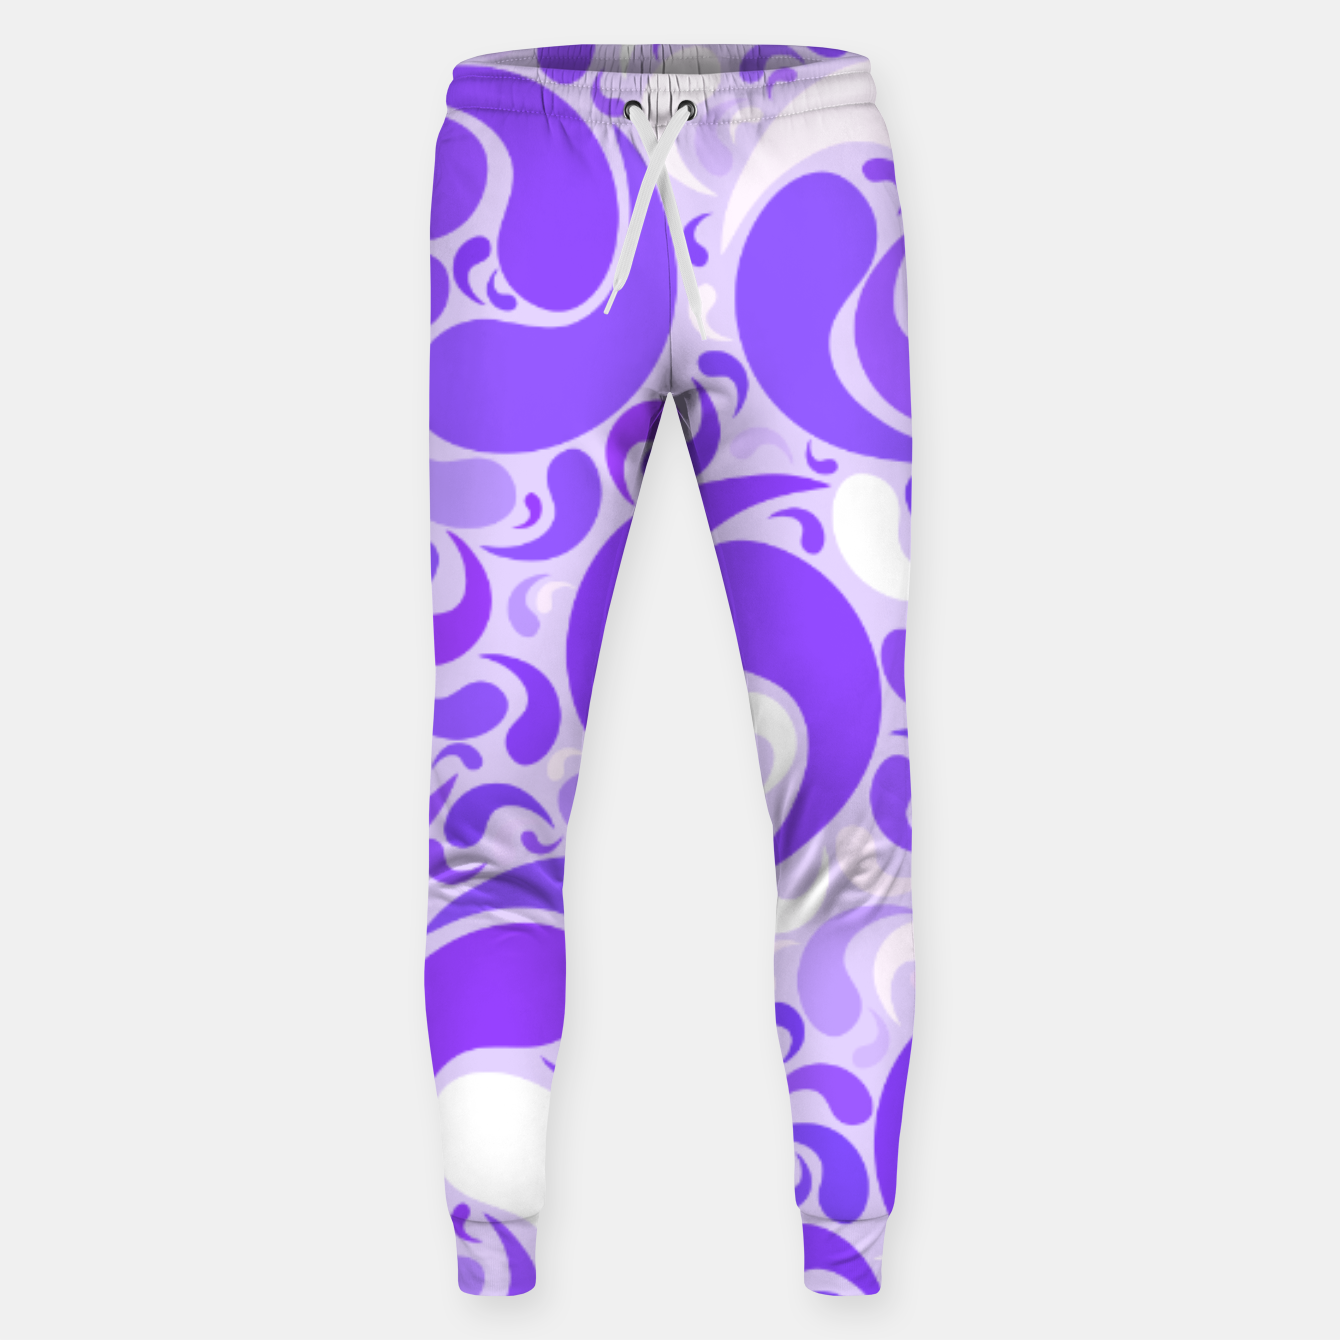 Image of Lavender dreams, violet dancing drops, geometric shapes in lilac color shades Sweatpants - Live Heroes